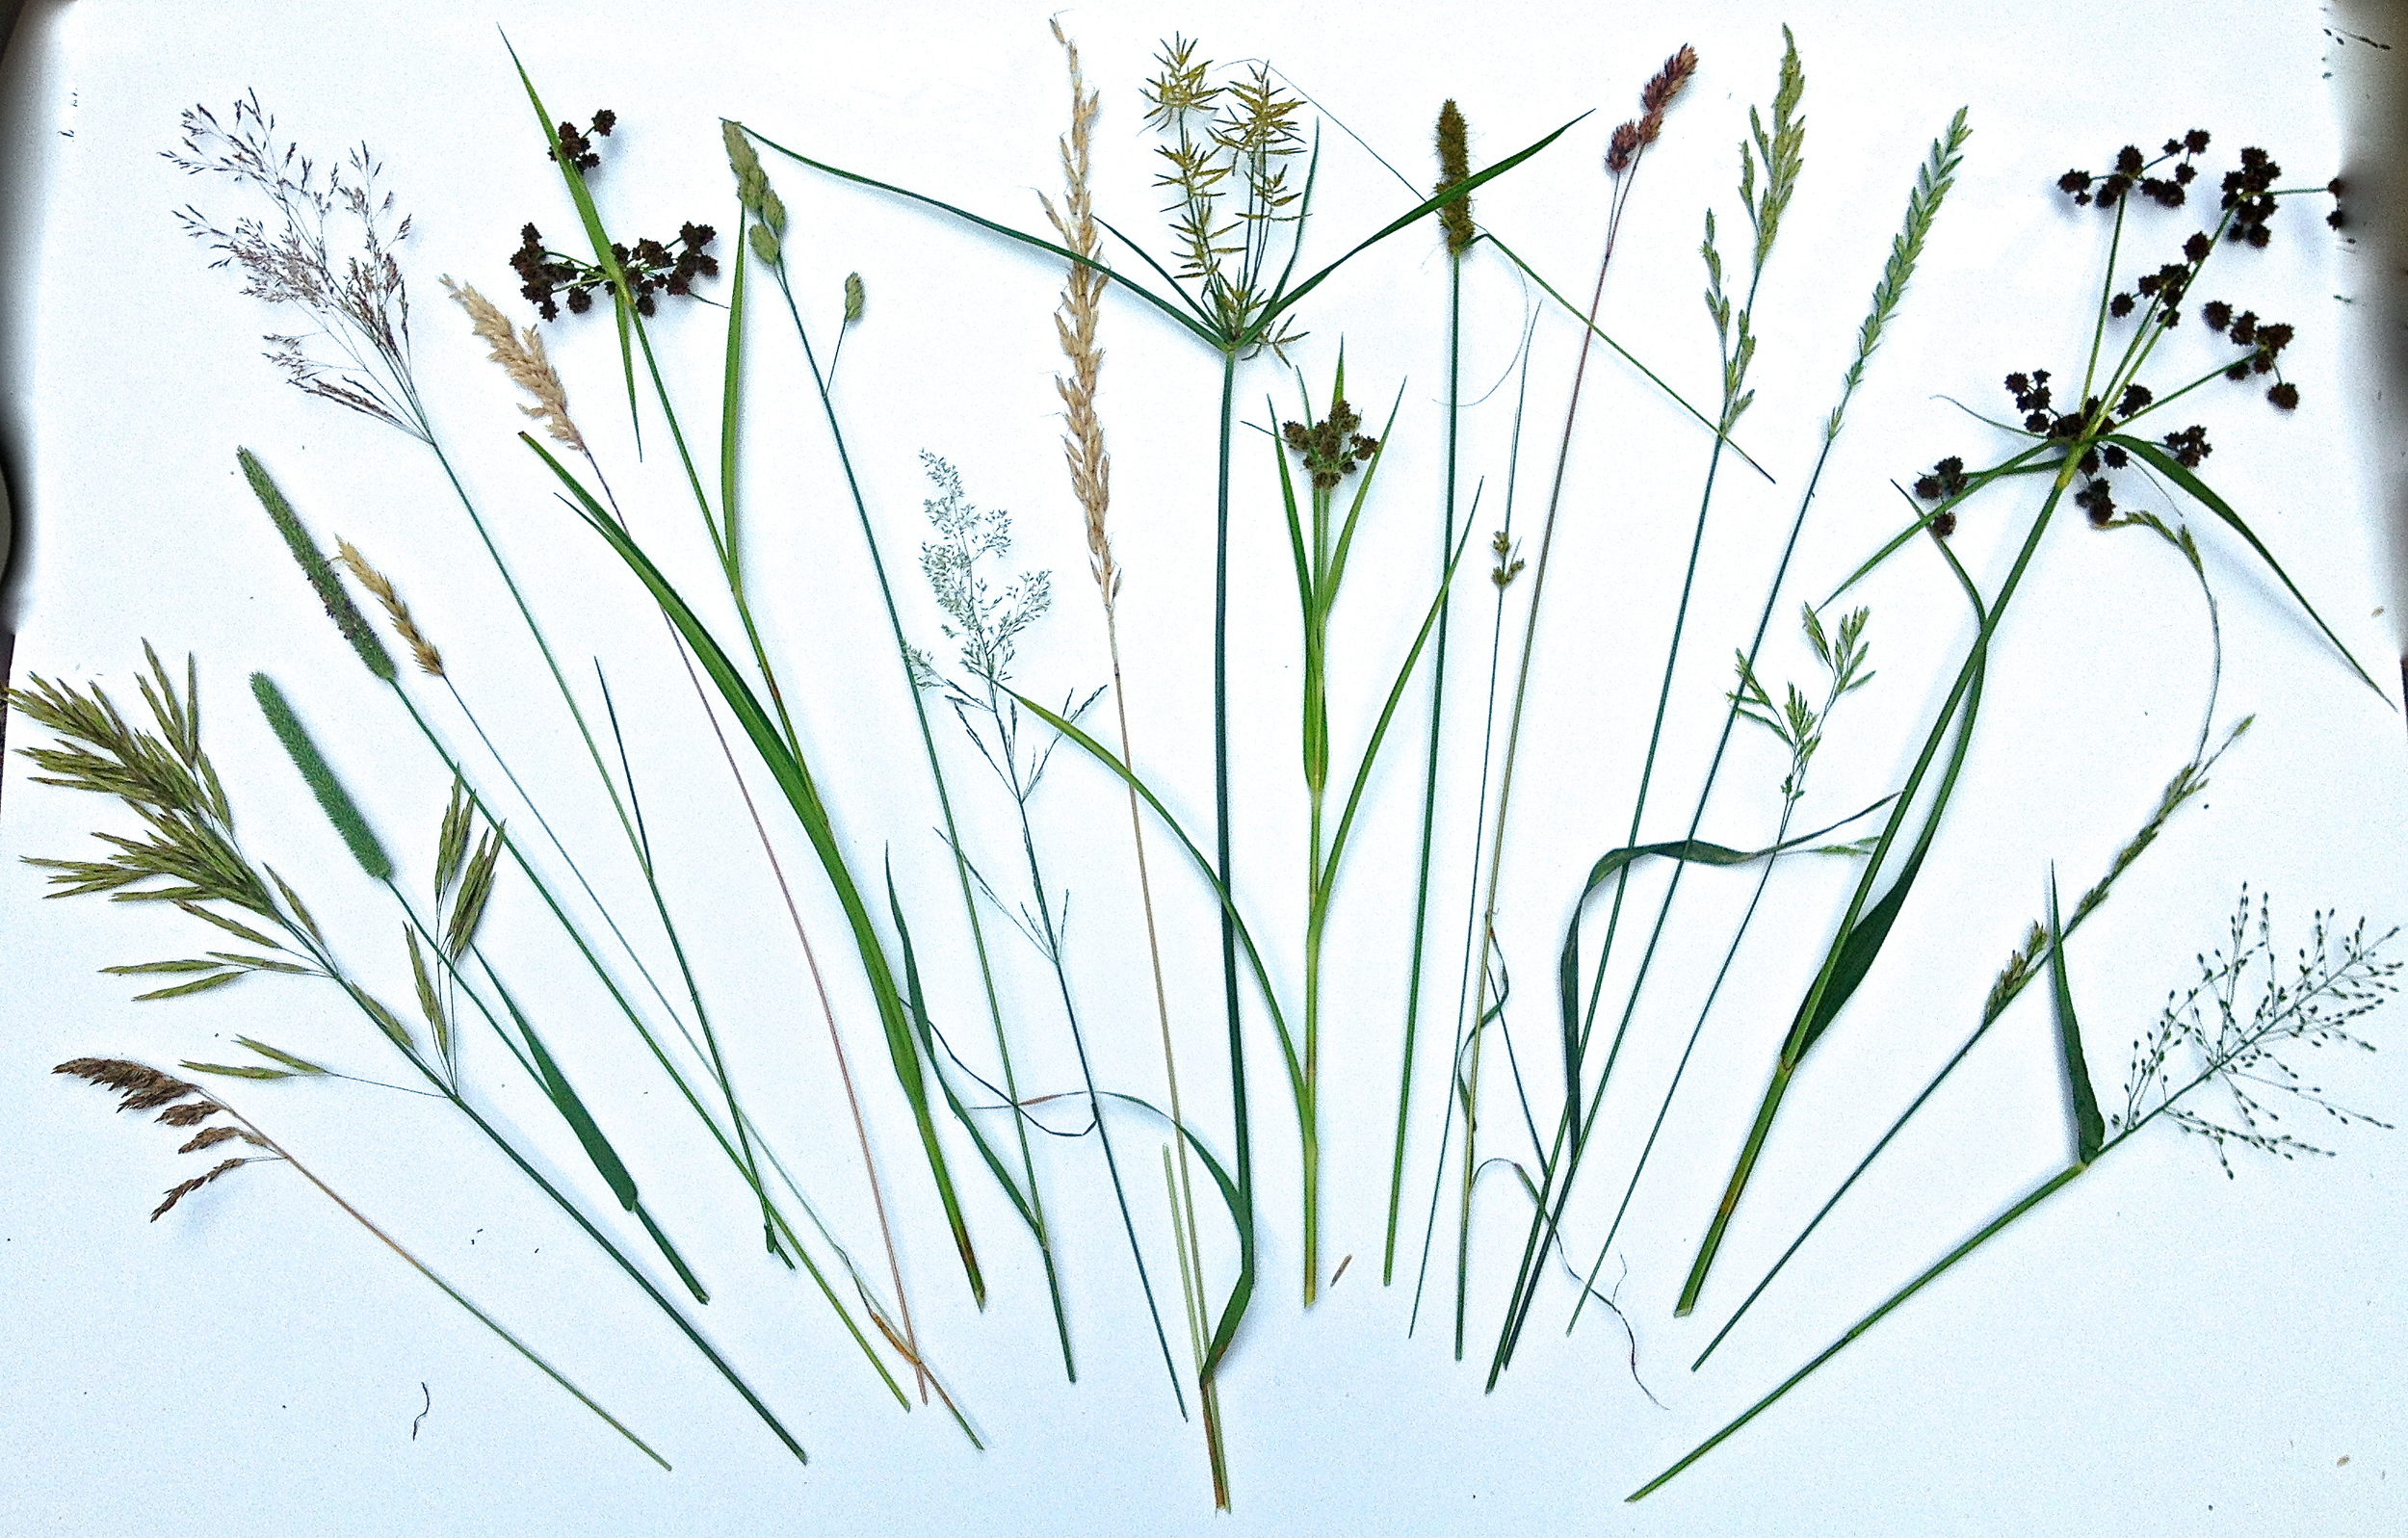 The grasses in here that look the most like fireworks are technically known as 'graminoids'.